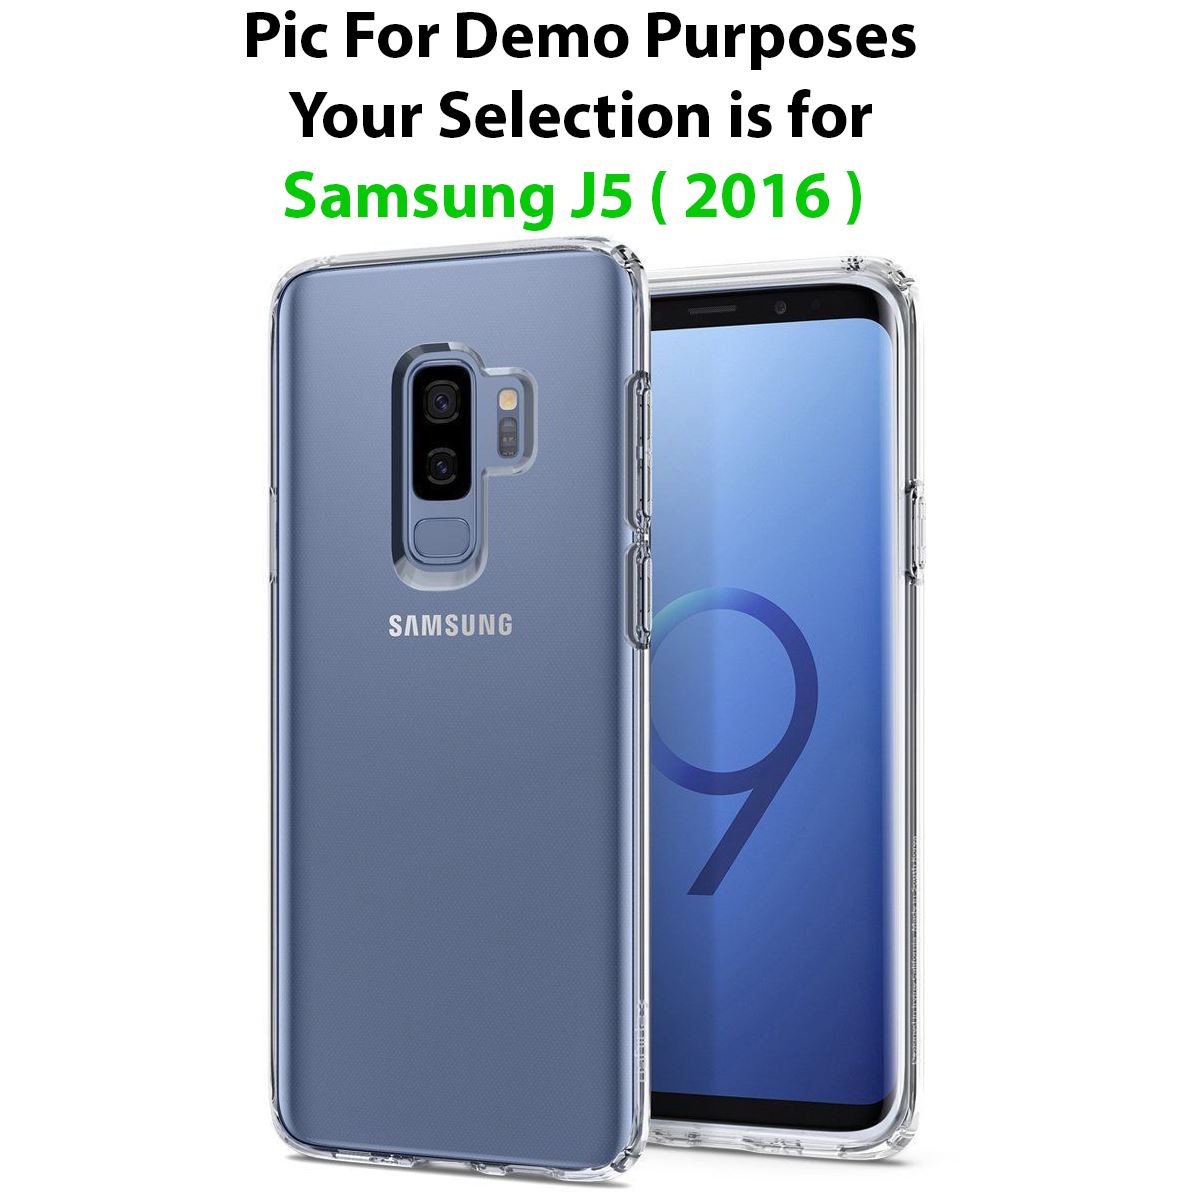 For-Samsung-Galaxy-S7-S8-S9-Case-Shockproof-Silicone-Protective-Clear-Gel-Cover